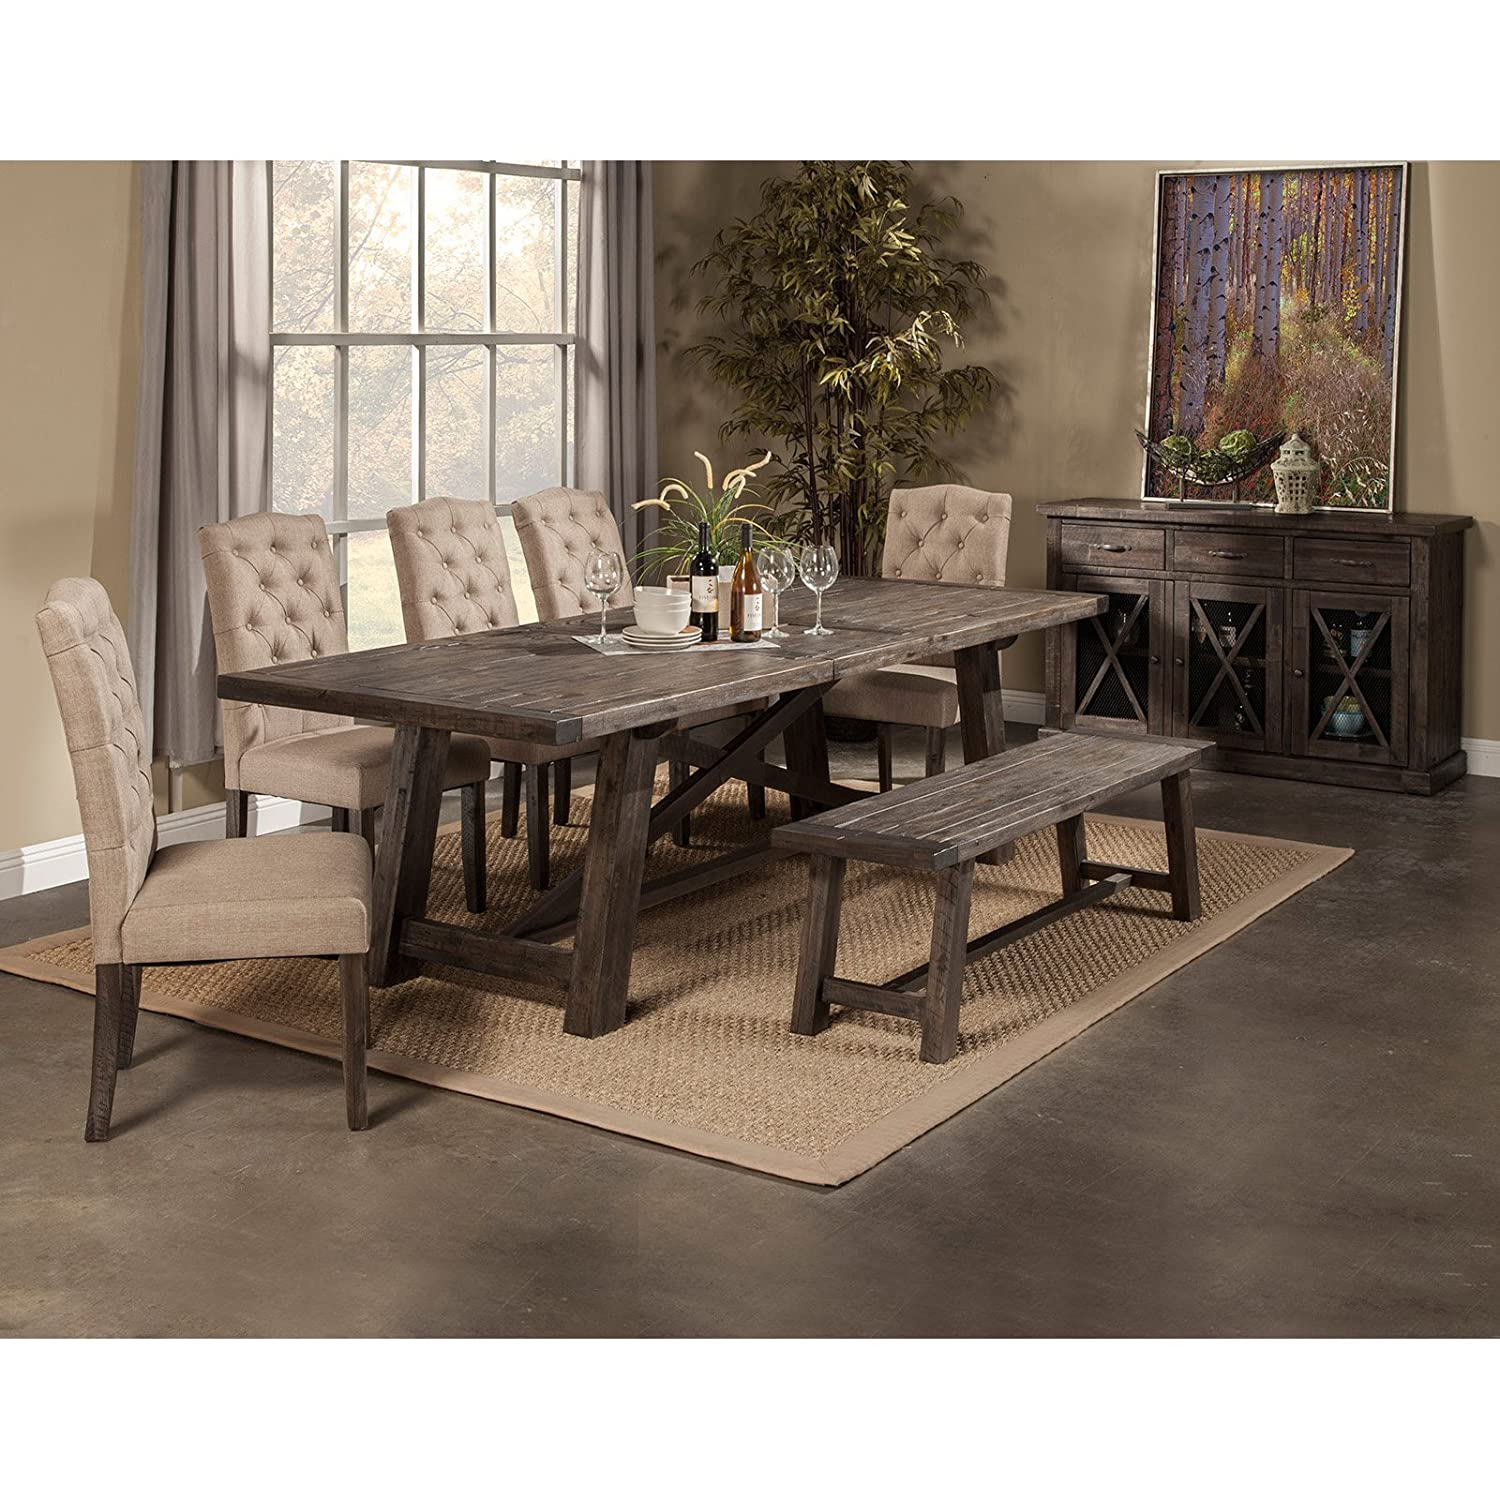 Rustic wood dining table w 4 upholstered chair 84 in l - Rustic Wood Dining Table W 4 Upholstered Chair 84 In L 48